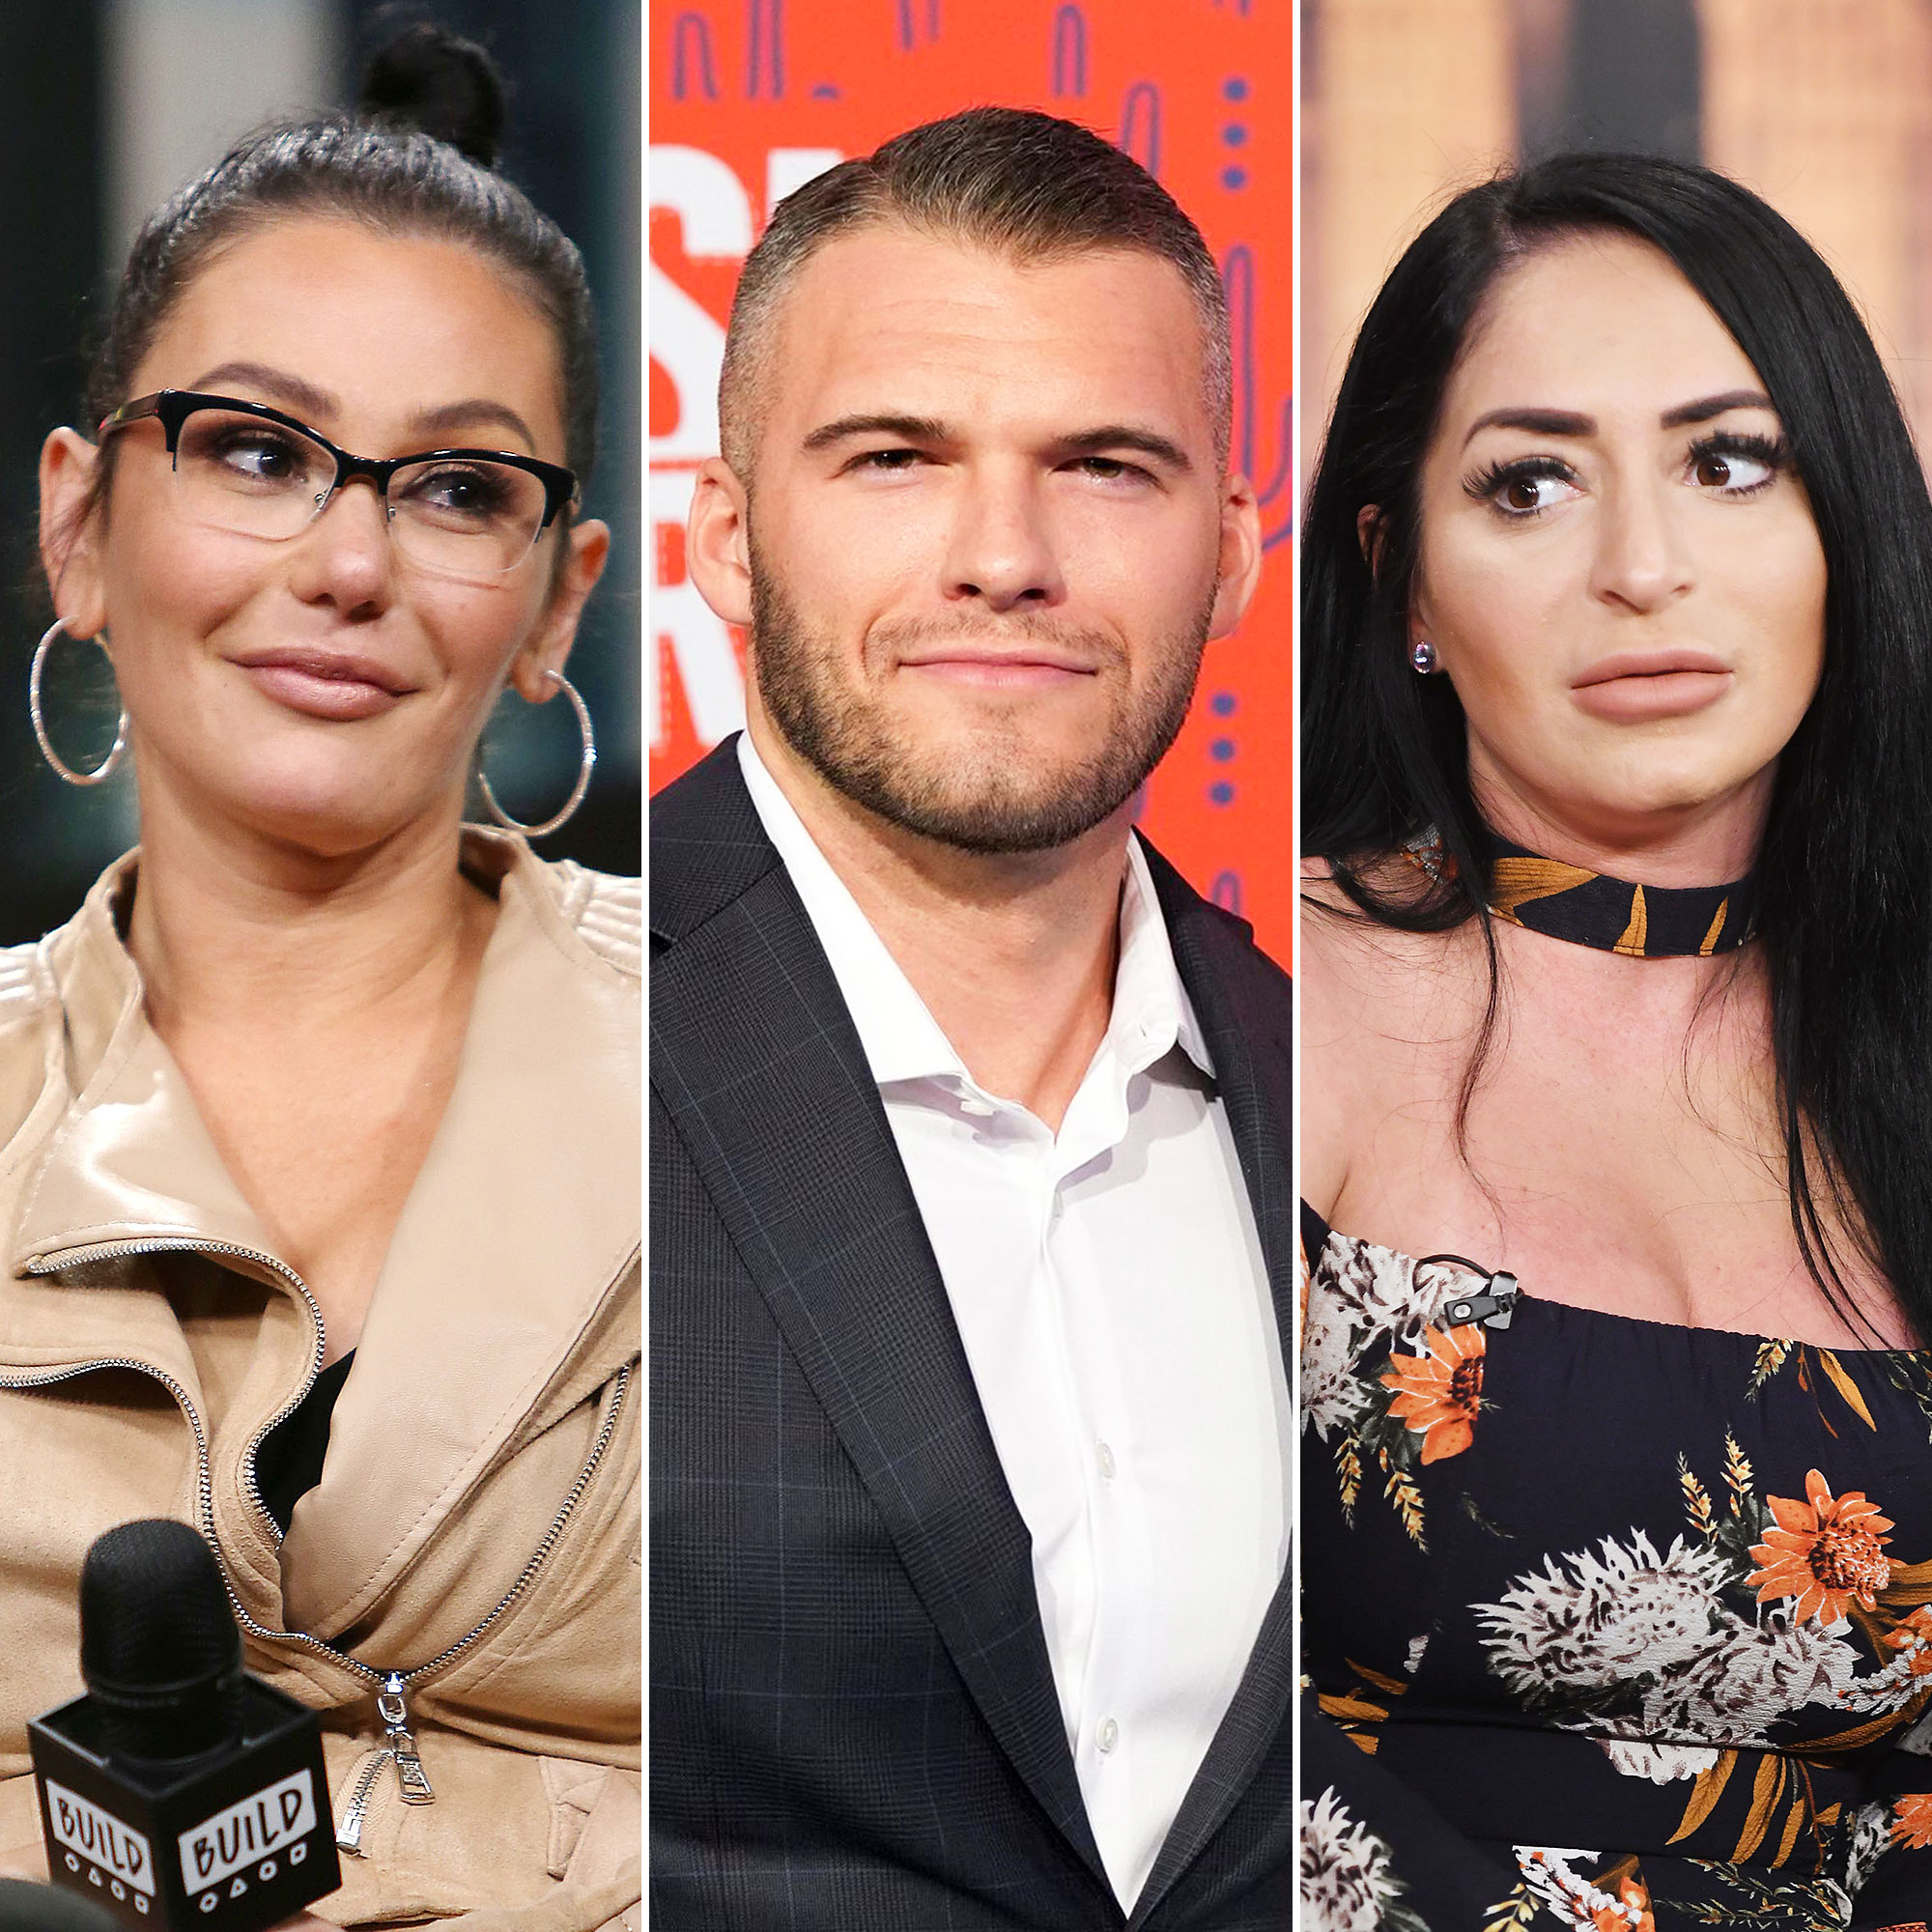 Jenni JWoww Farley Calls Out Angelina Pivarnick for Disregard of Boundaries After Zack Clayton Carpinello Drama